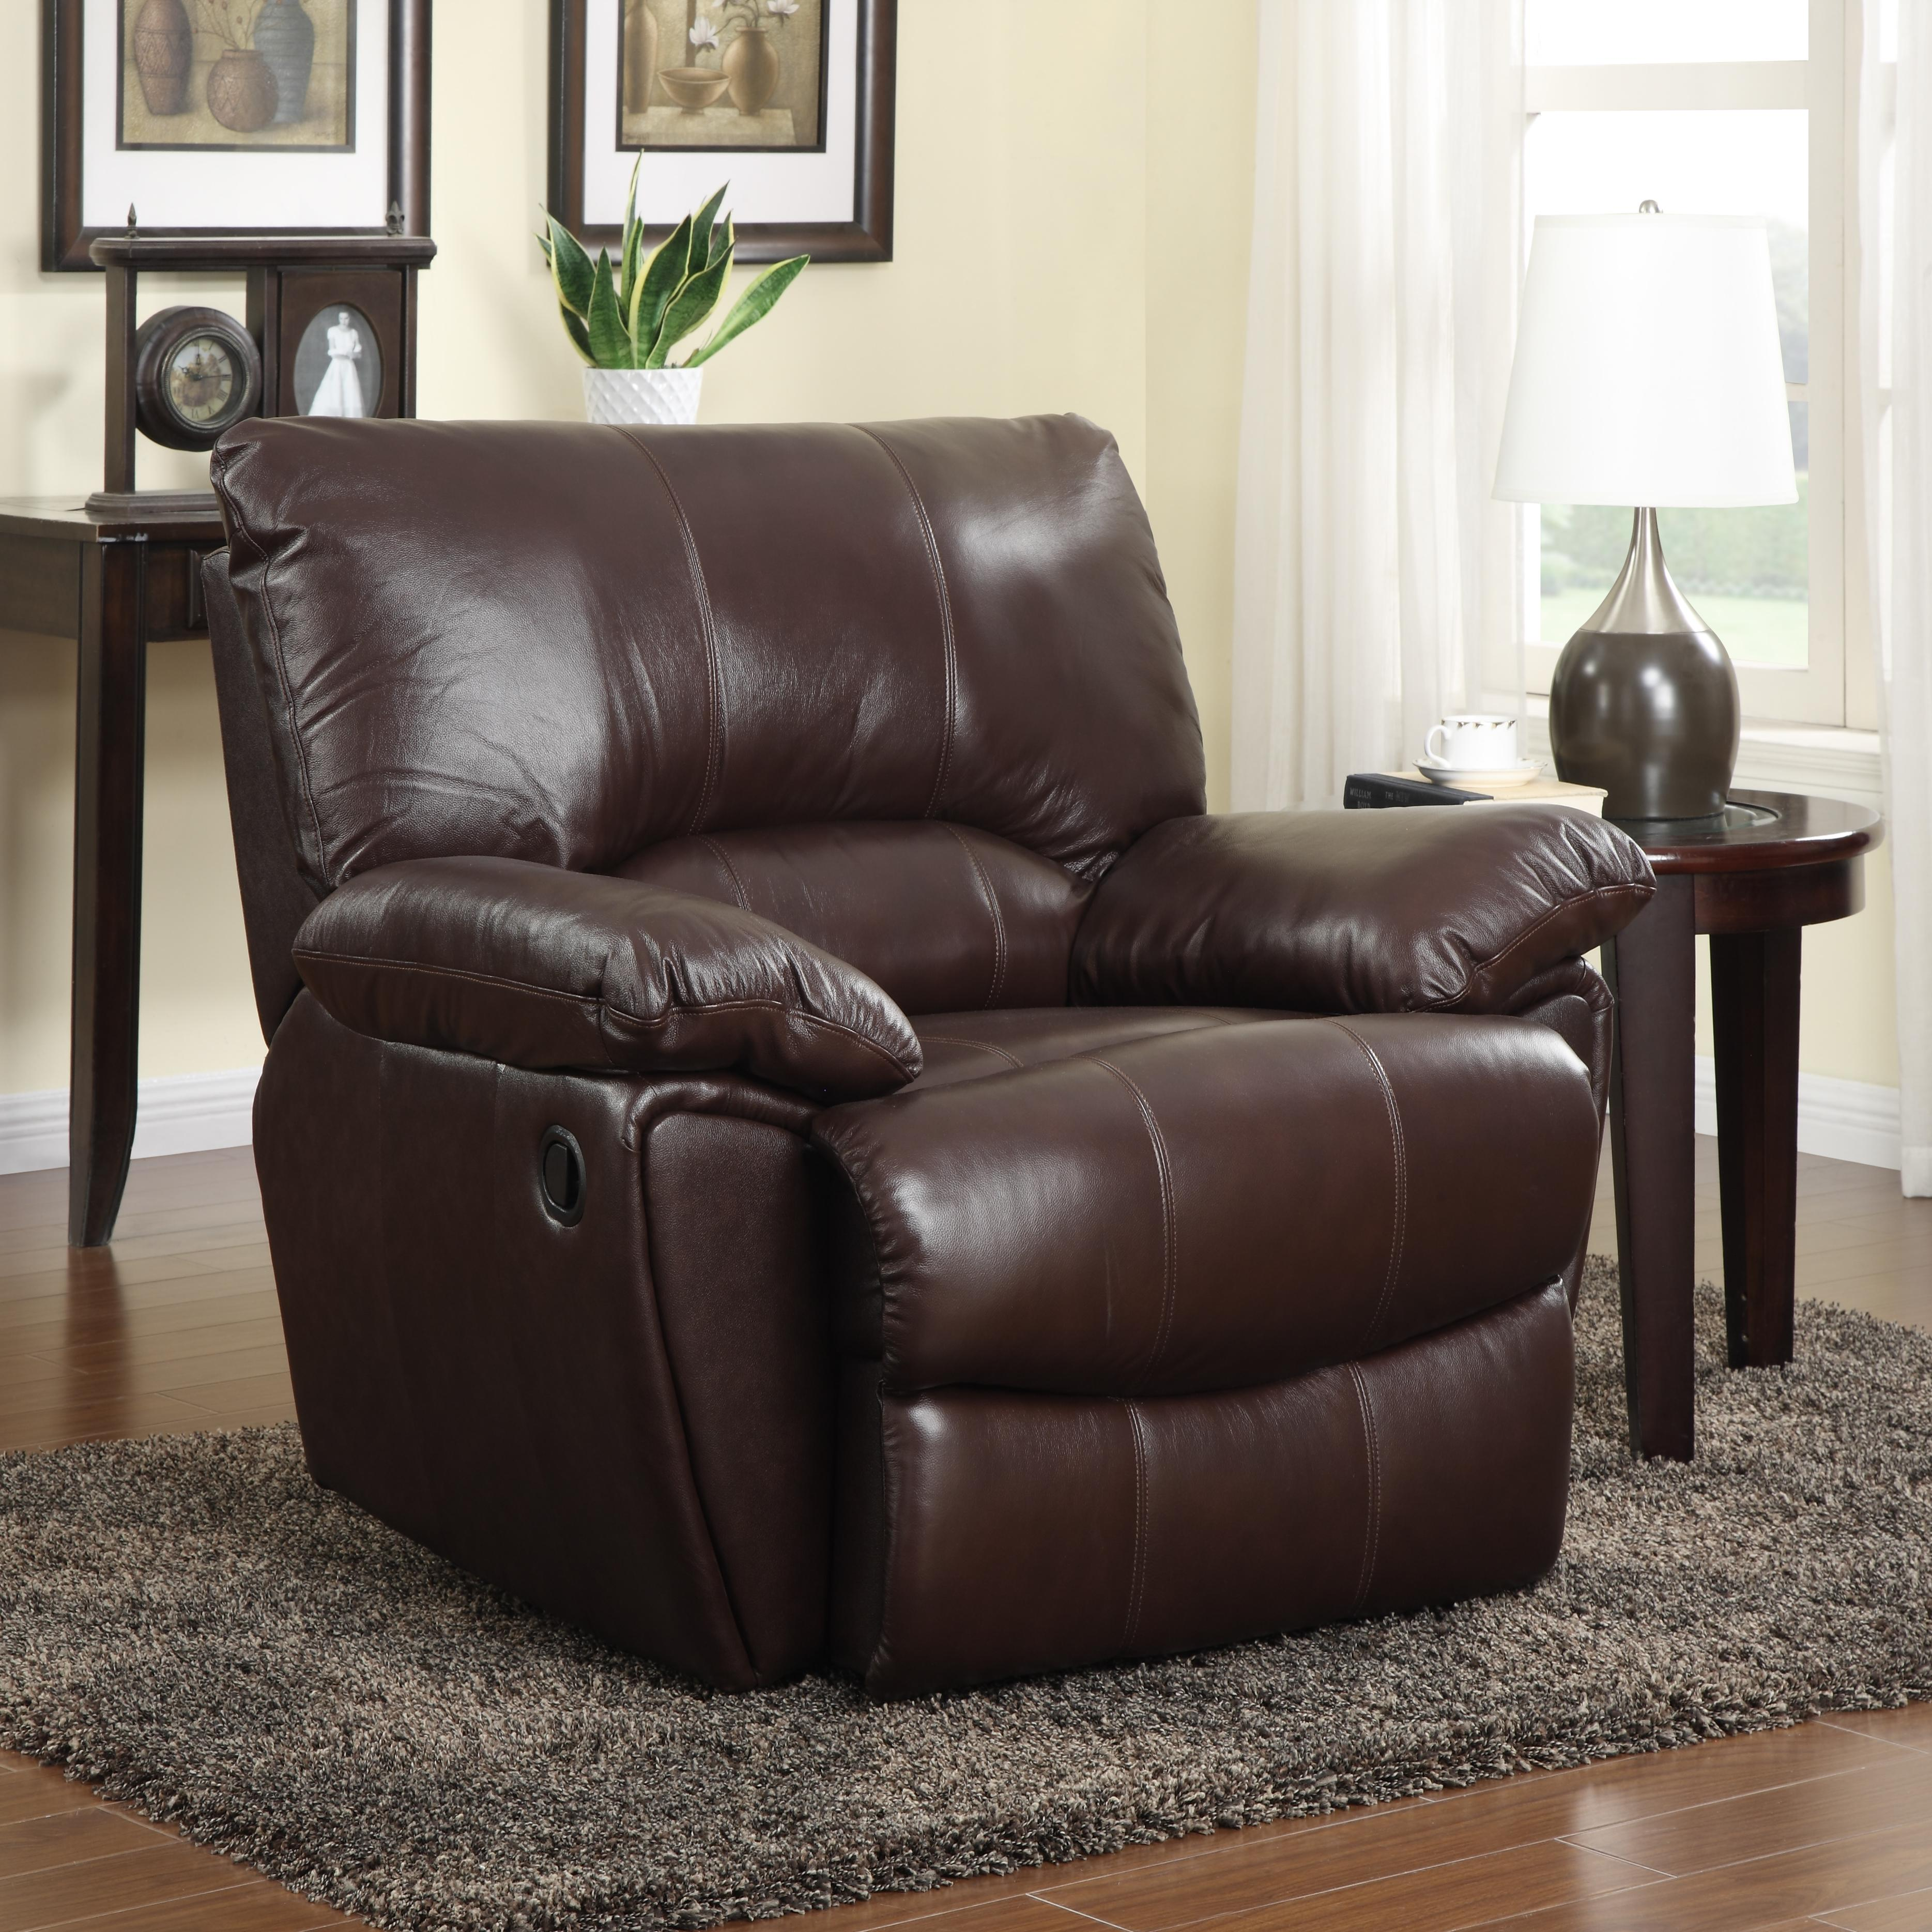 Clifford Brown Leather Recliner With Pillow Arms Quality